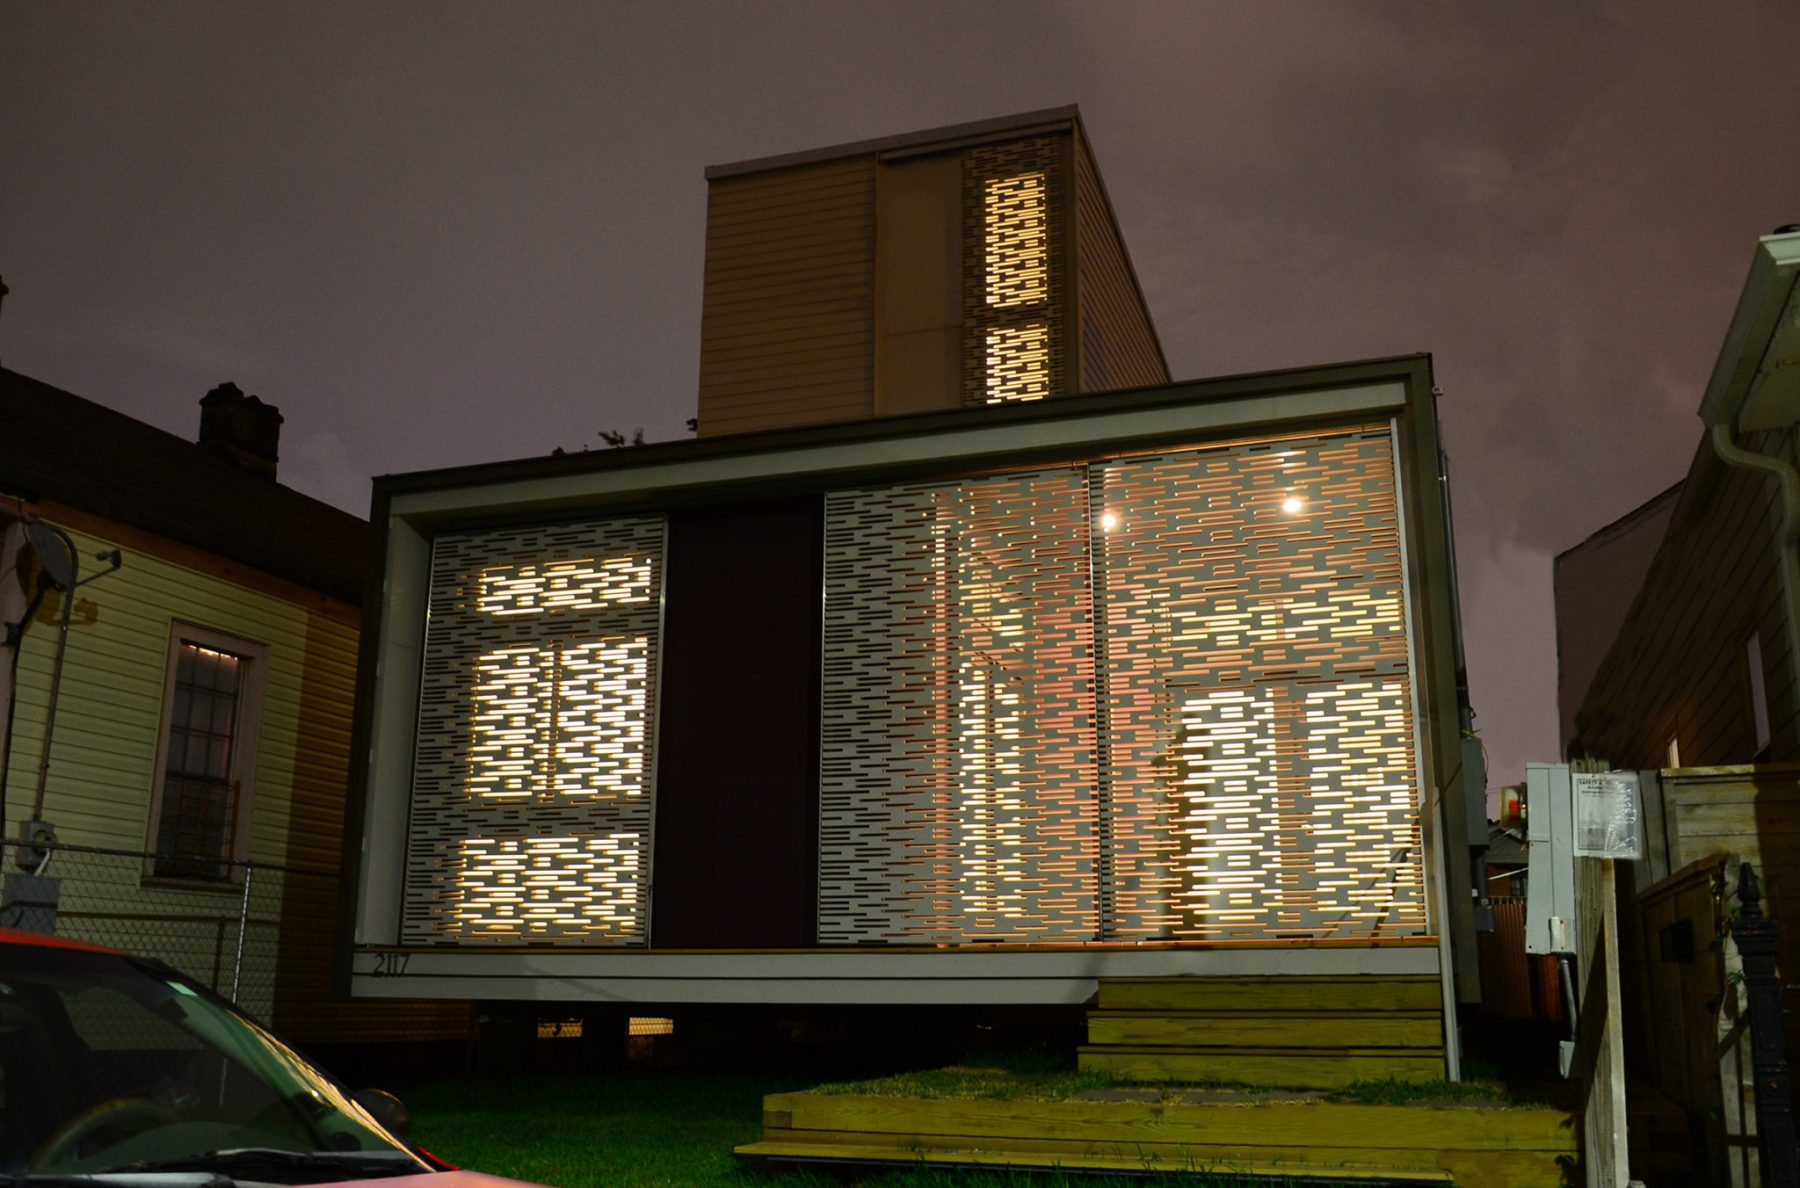 Front view of a modern home at night with lights from inside coming out through screen details